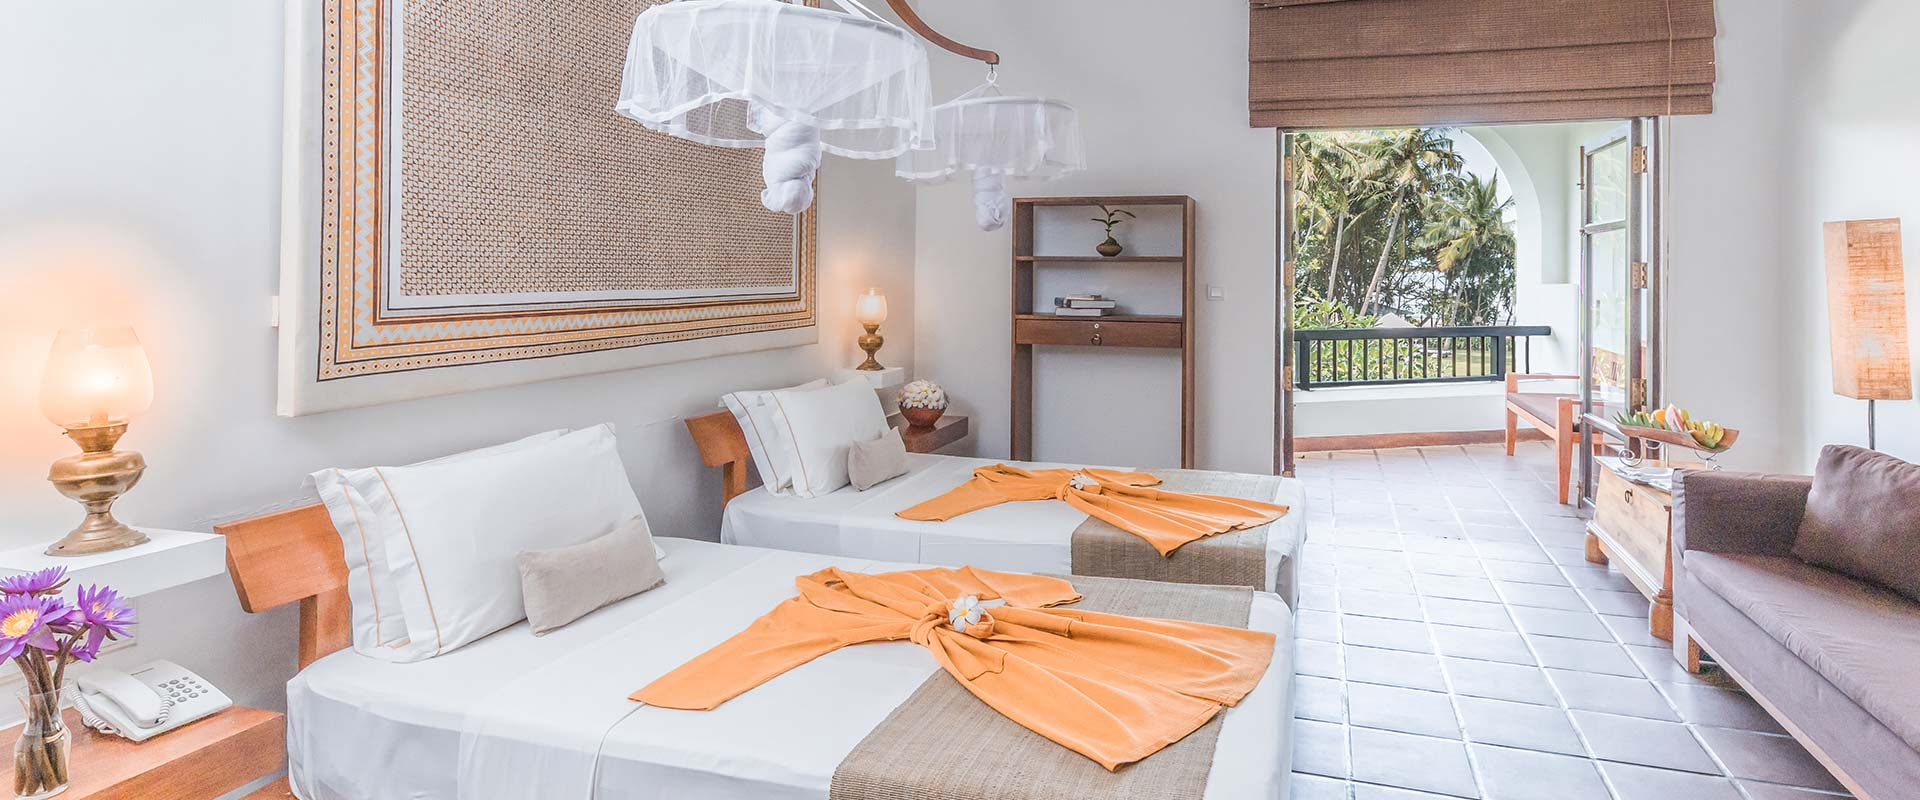 Interior of accommodation at Heritance Ayurveda